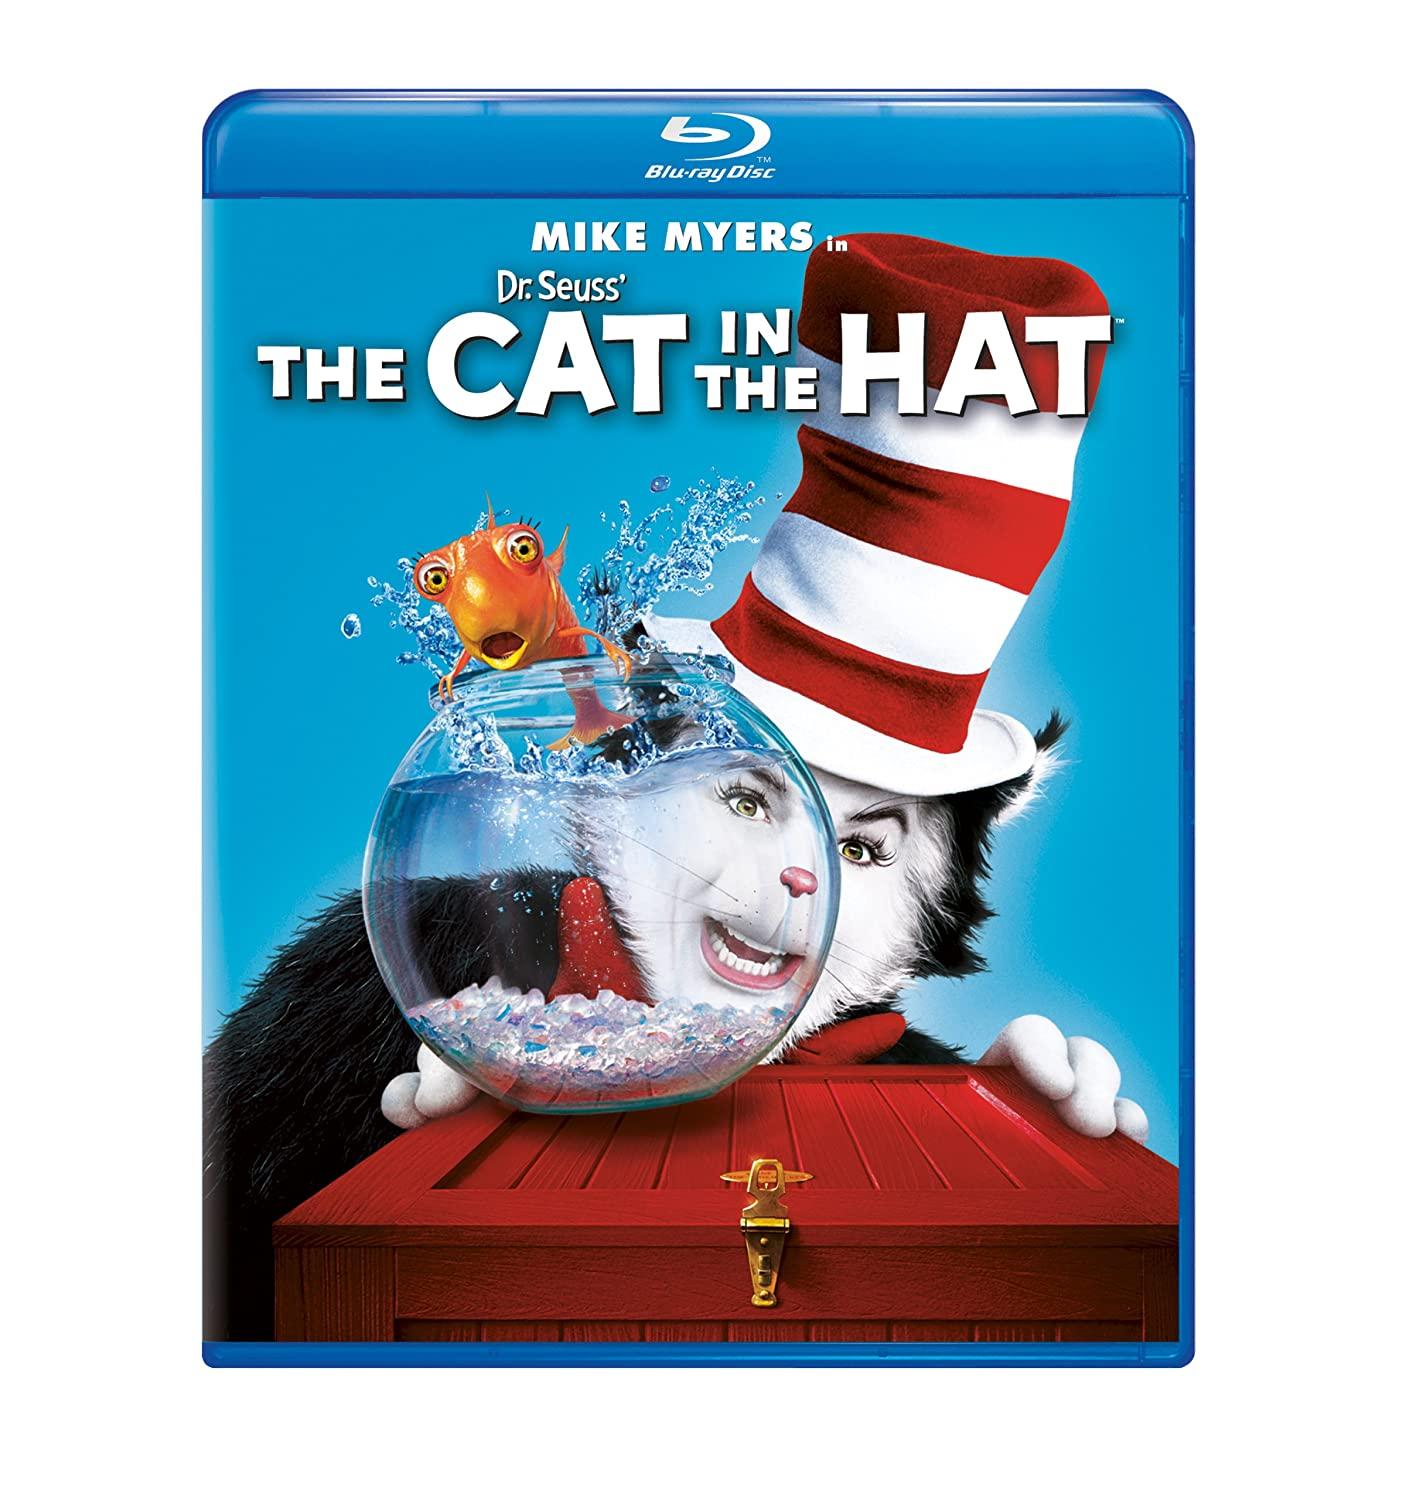 Cat in the hat soundtrack